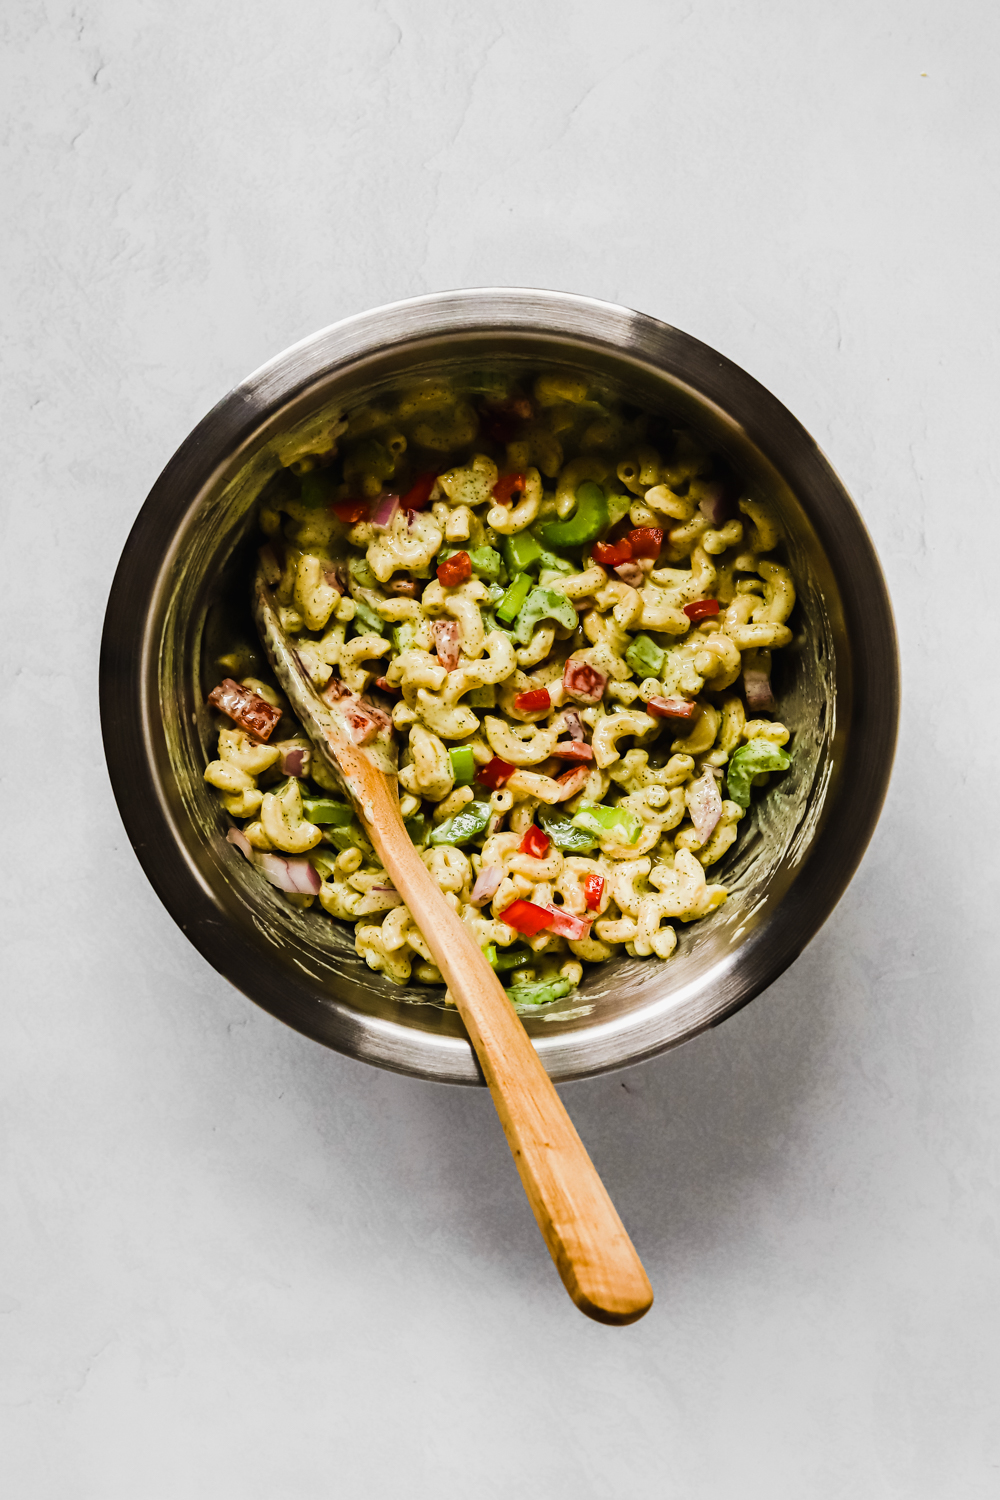 A metal mixing bowl of elbow noodles, chopped veggies, and mac salad sauce stirred together with a wooden spoon.